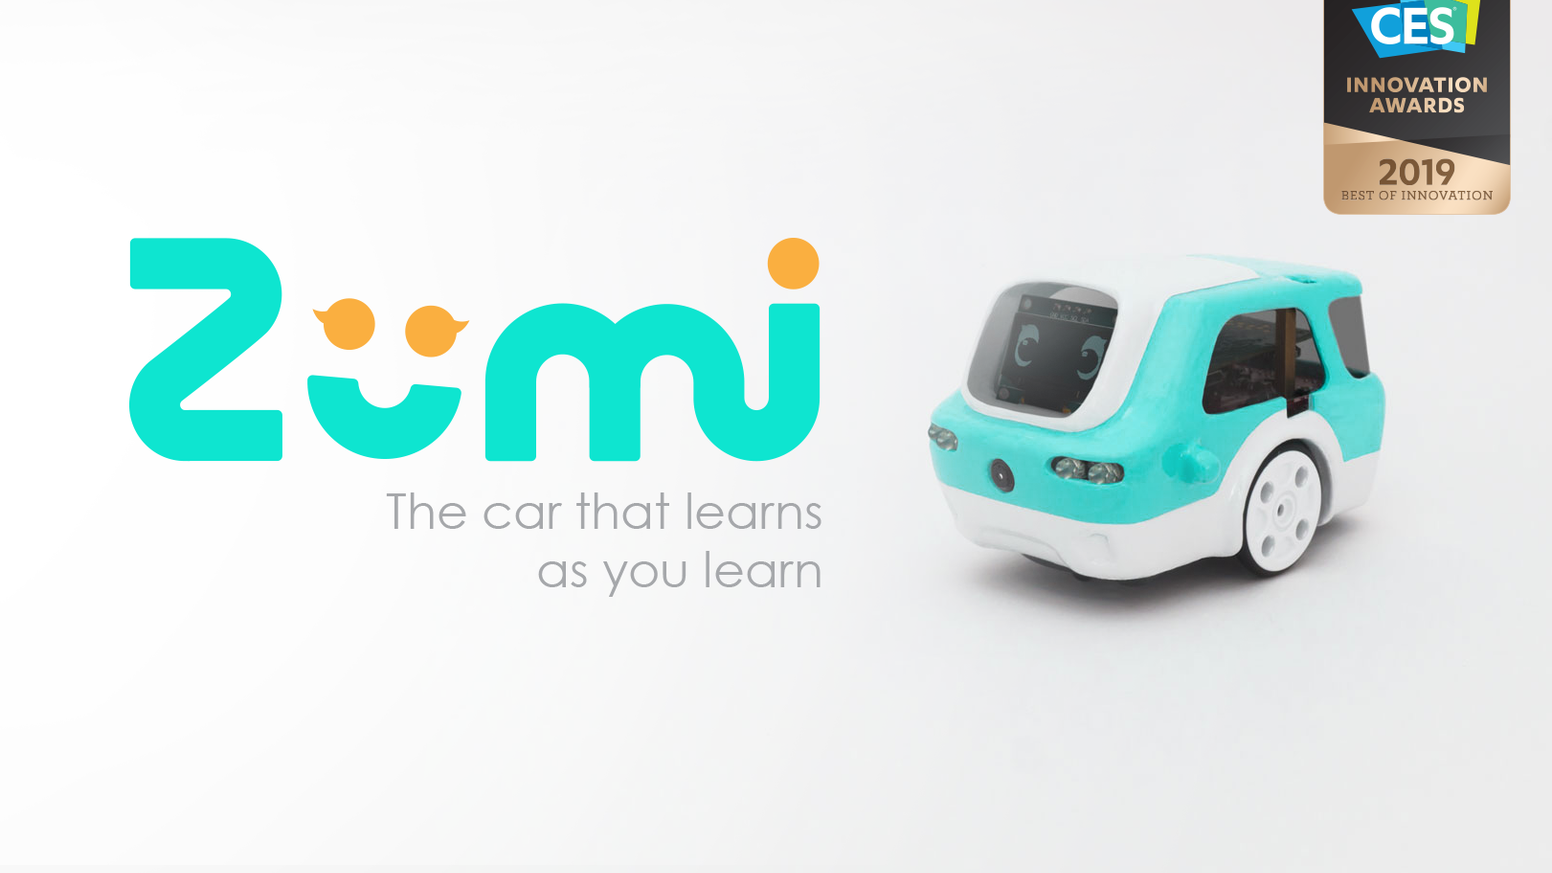 Zümi is a friendly & approachable robot that makes the exciting world of artificial intelligence and self-driving cars accessible